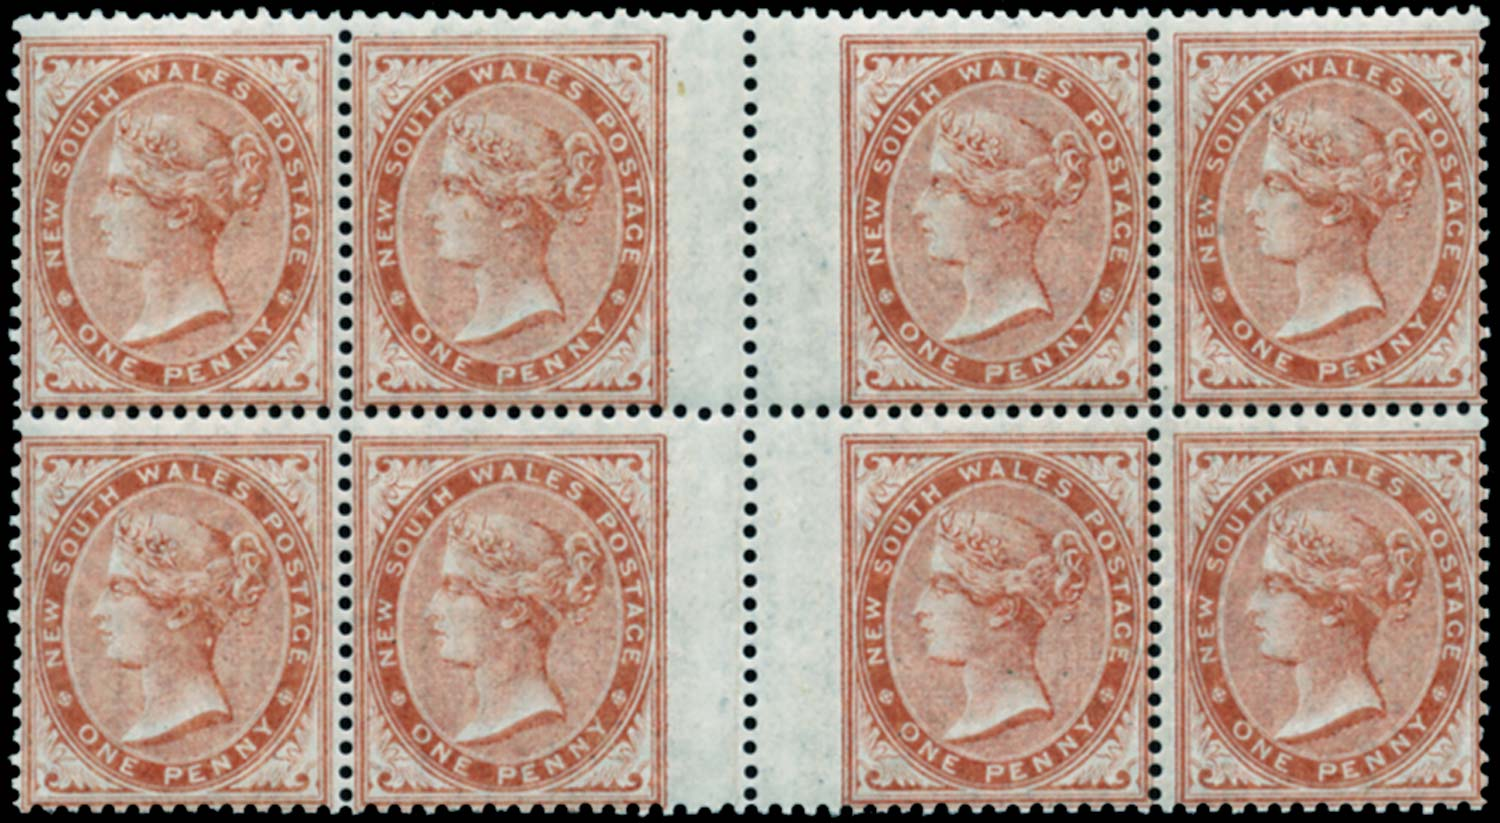 NEW SOUTH WALES 1862  SG187 Mint 1d dull red no watermark interpane block